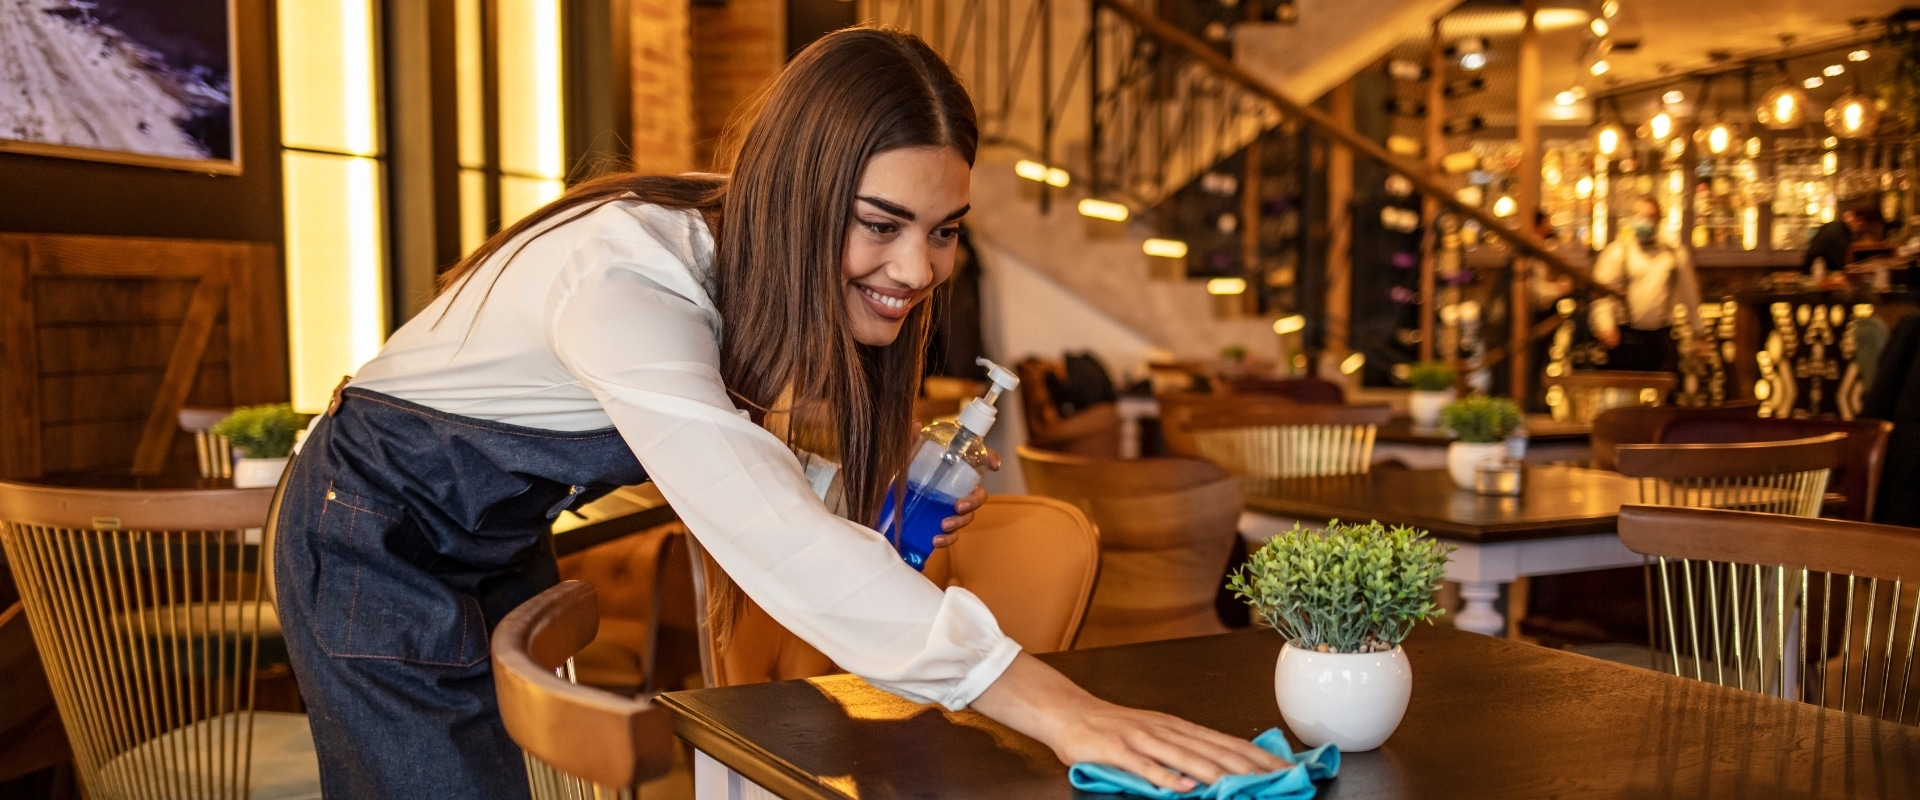 cleaner cleaning tables in a restaurant